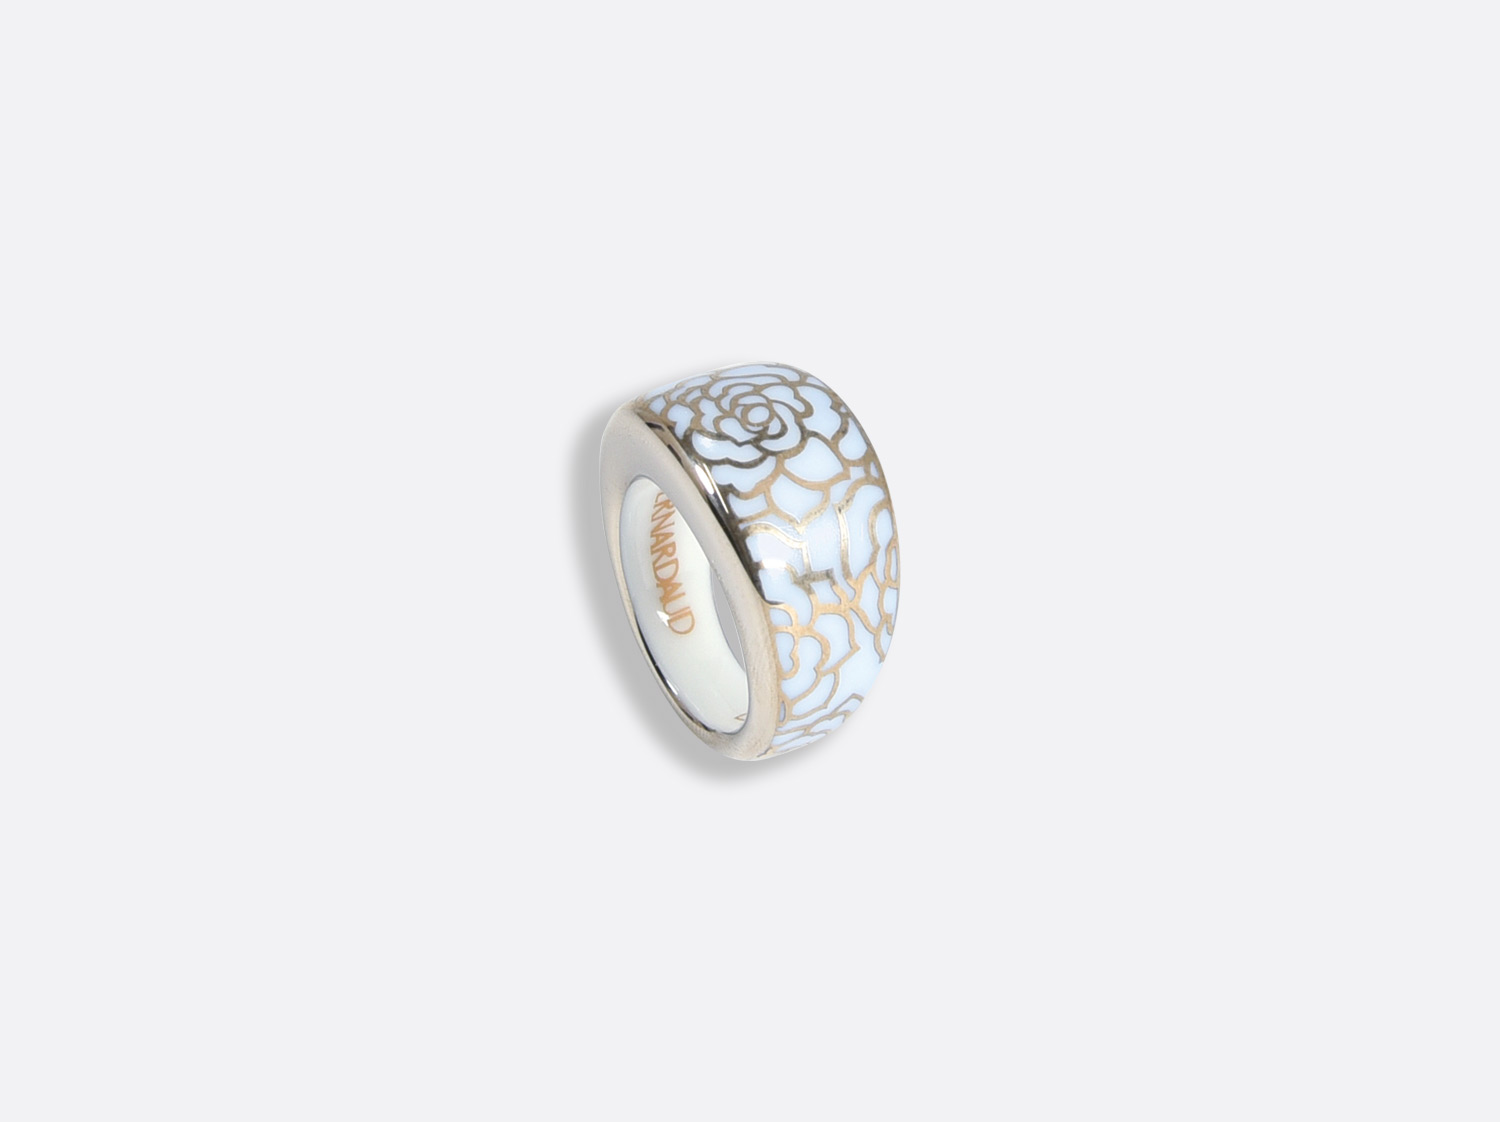 Bague en porcelaine de la collection Gardenia Bleu Platine Bernardaud